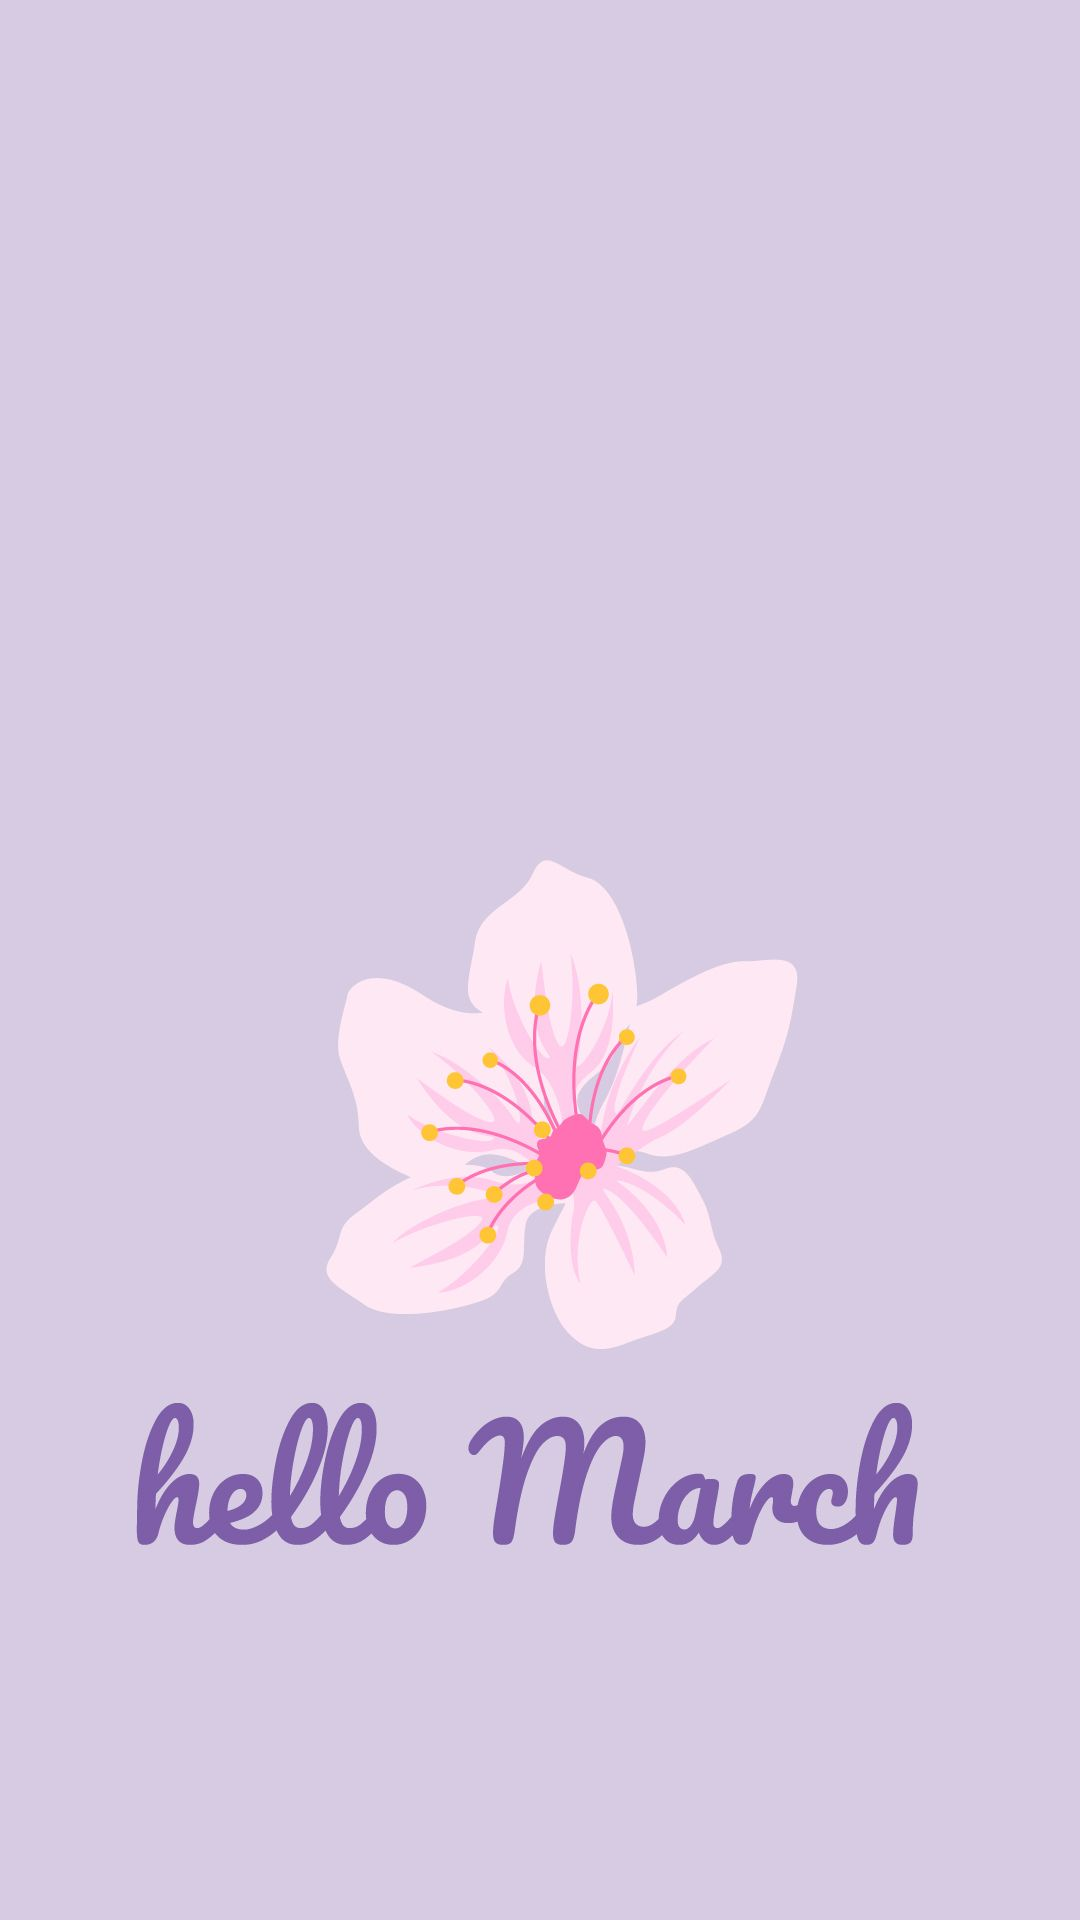 1080x1920 March Mobile Wallpapers | hello slowlife | mobile and ...